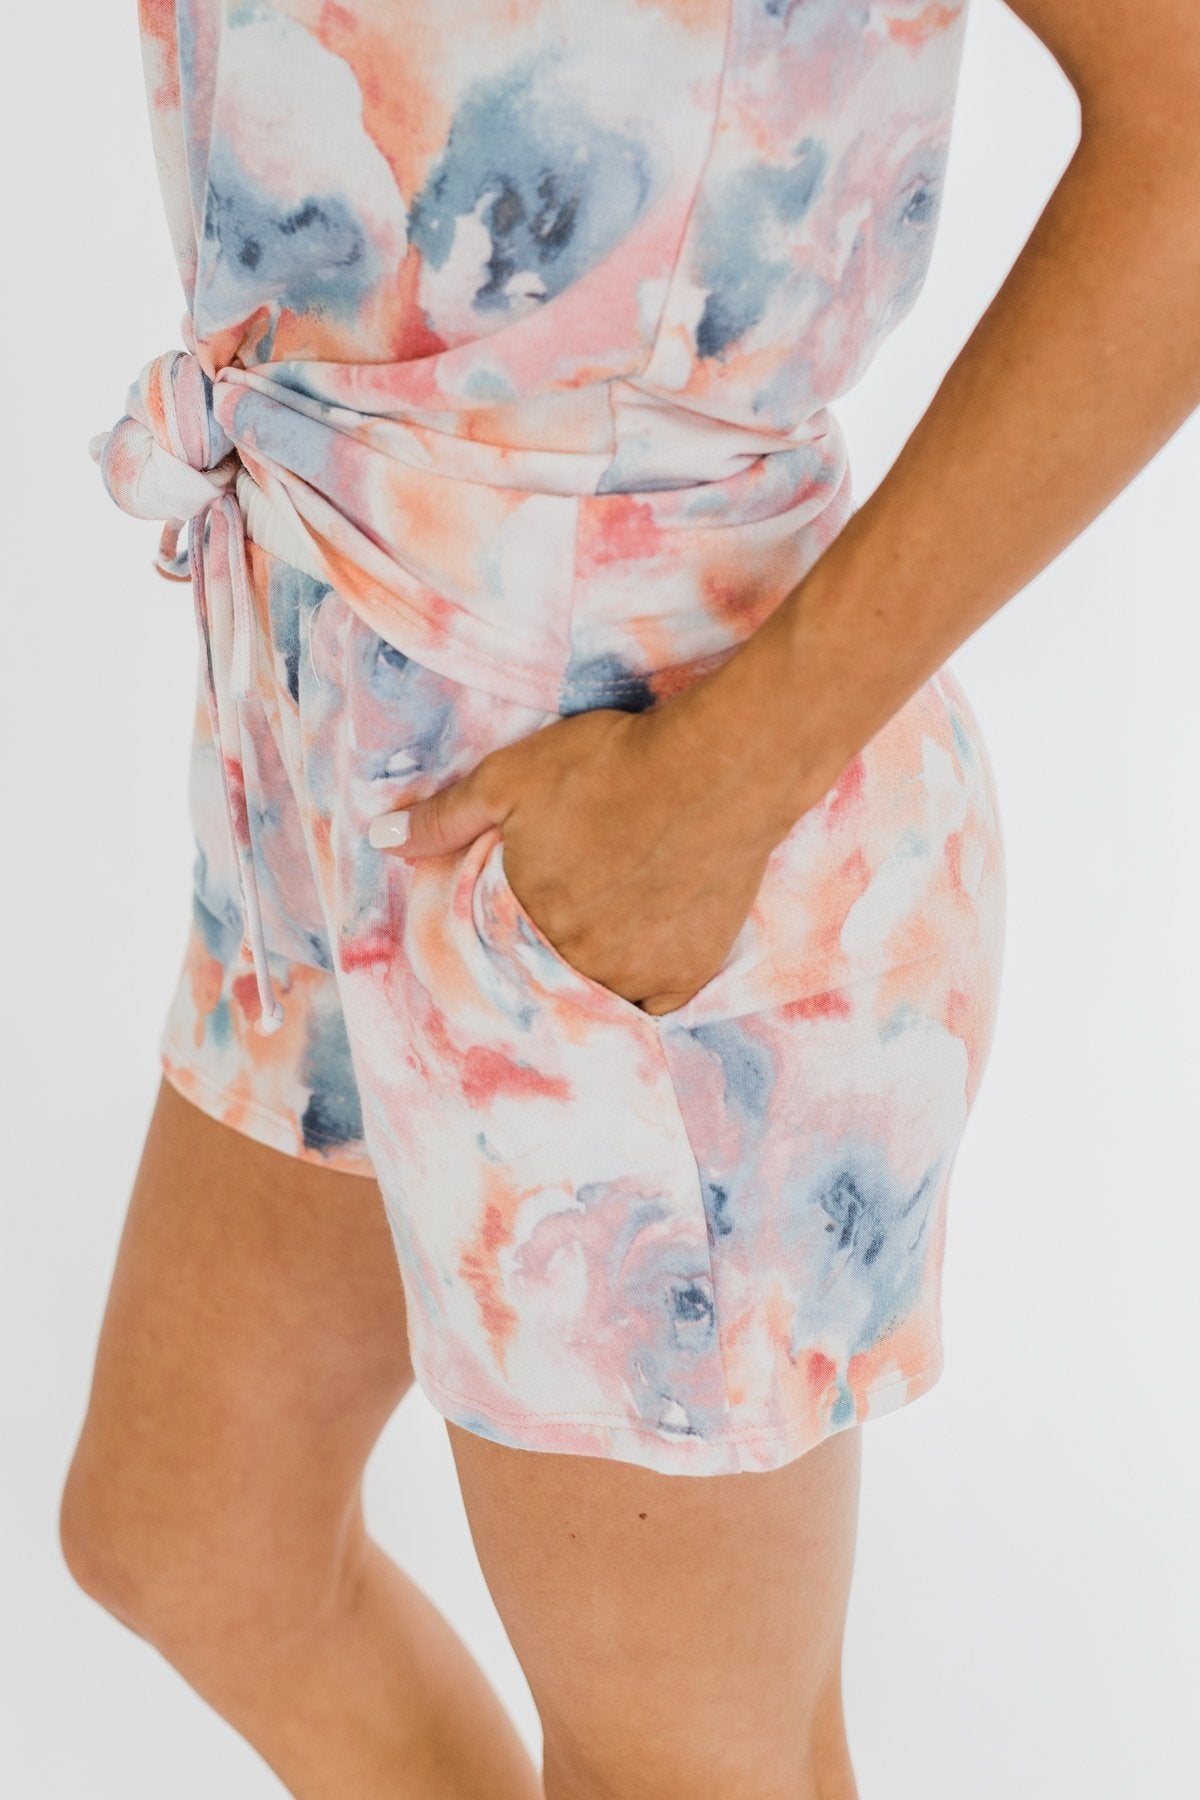 Cuddle Up Close Floral Watercolor Lounge Shorts- Pink, Peach, Blue